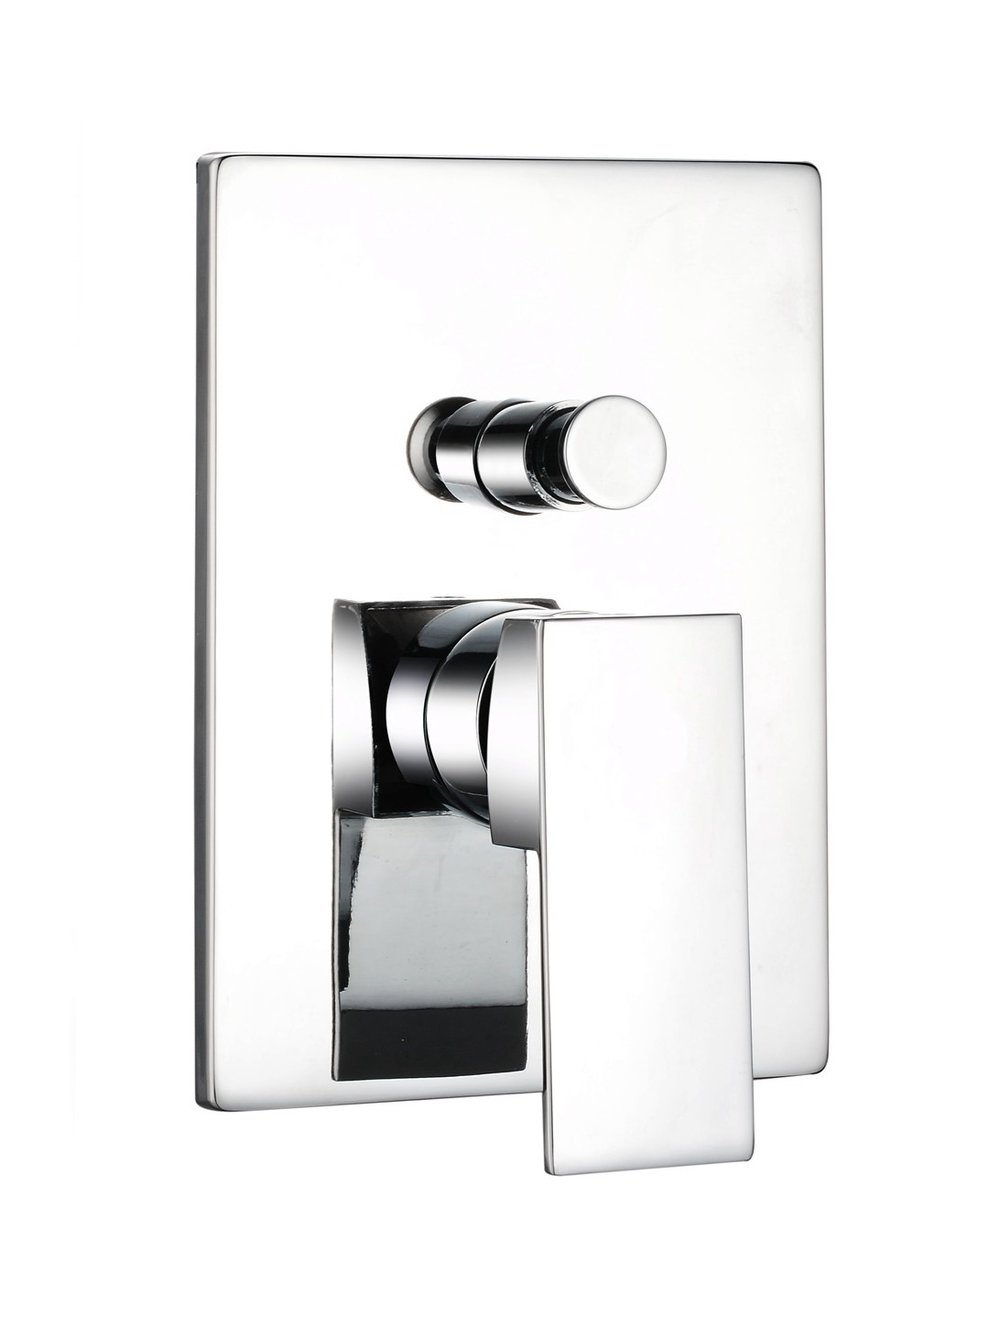 3802-108: Concealed shower valve with diverter